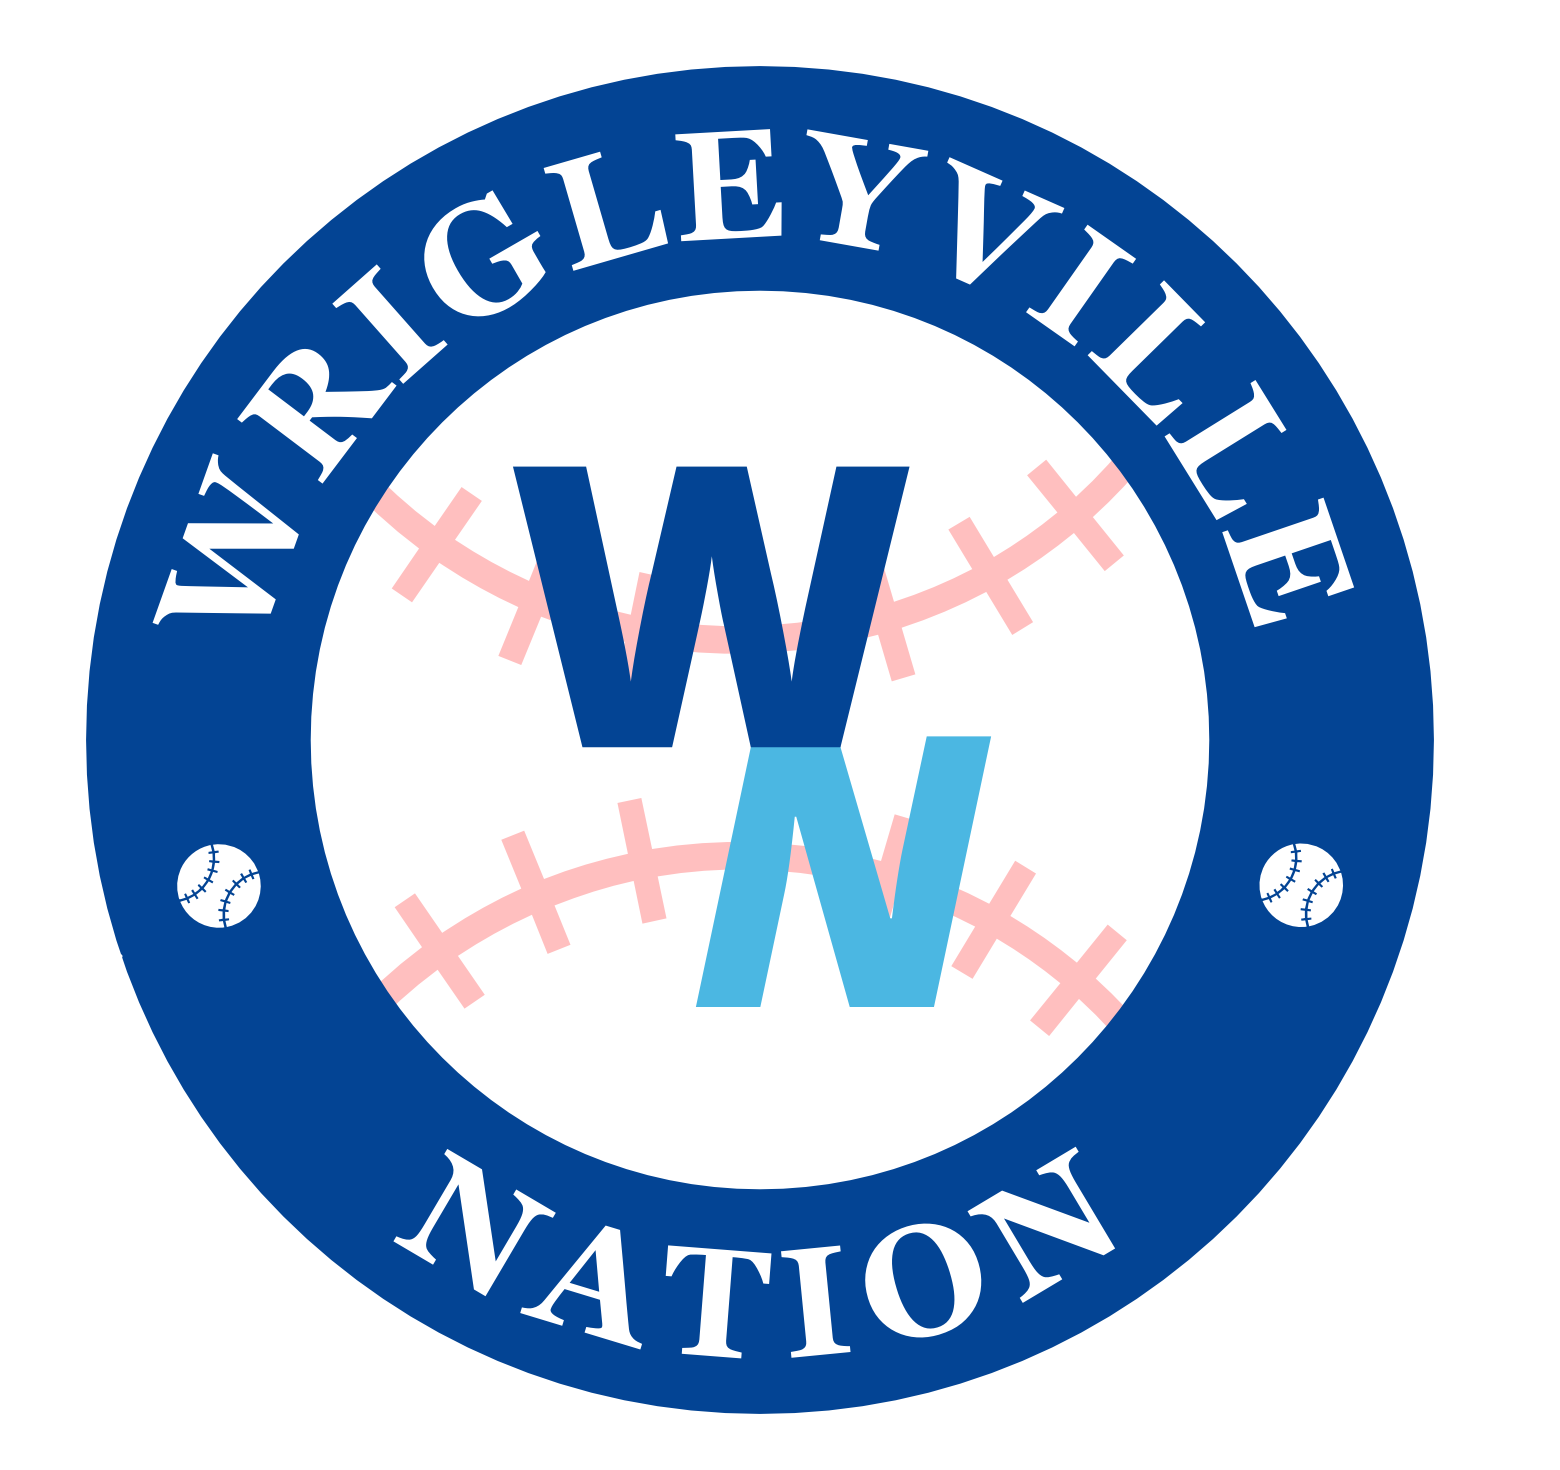 Wrigleyville Nation Ep 222 - Guest: Matthew Trueblood, Negotiations, Innovation Ideas, Draft, Sosa , & More show art